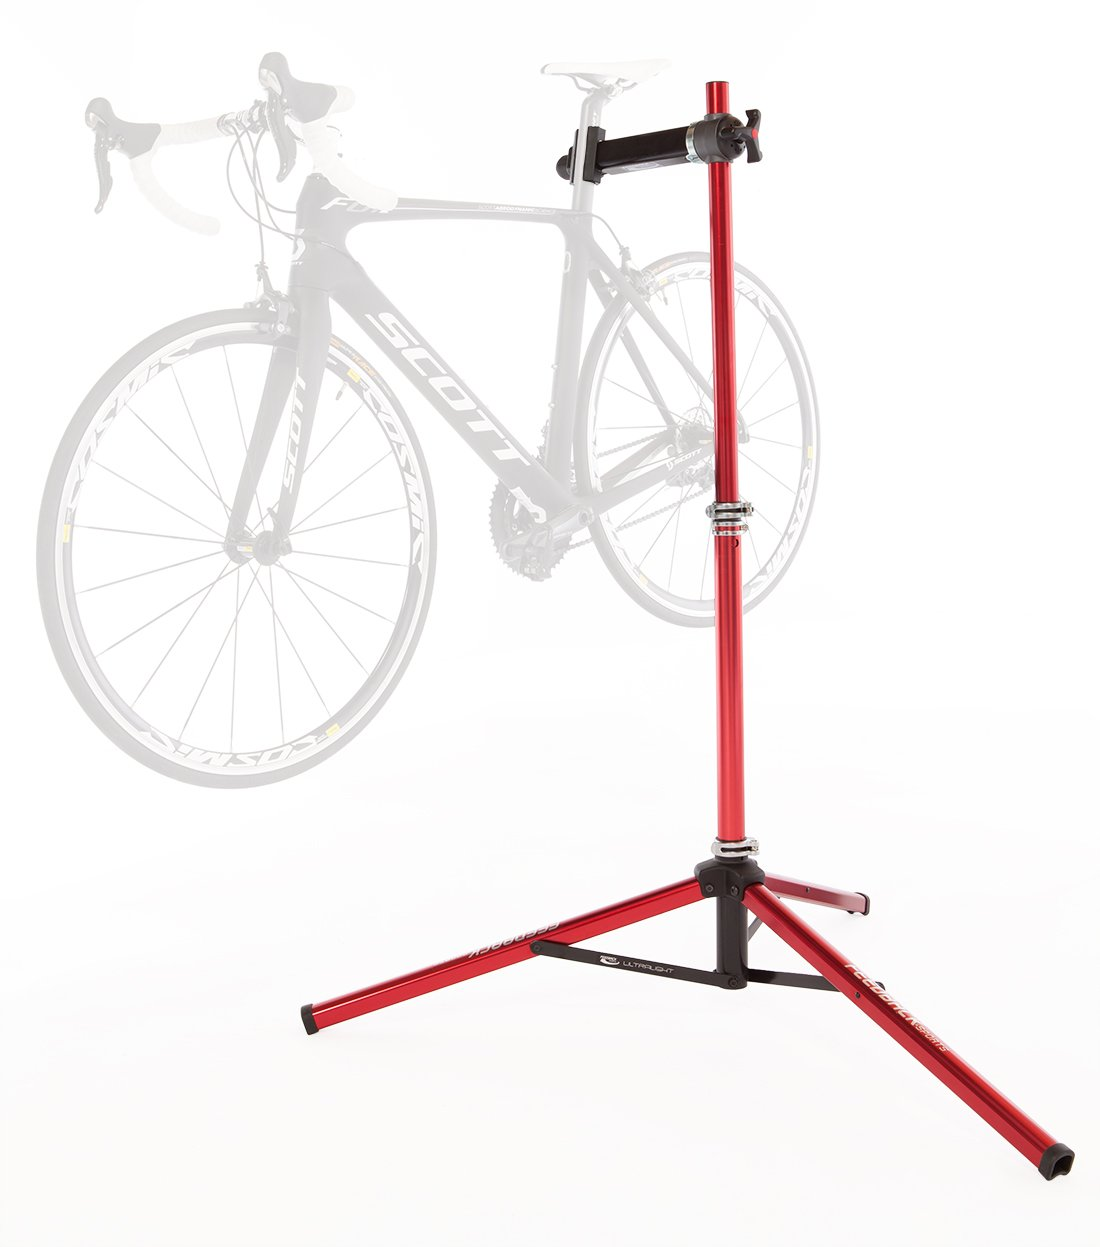 Feedback Sports Pro-Ultralight Repair Stand (Red) by Feedback Sports